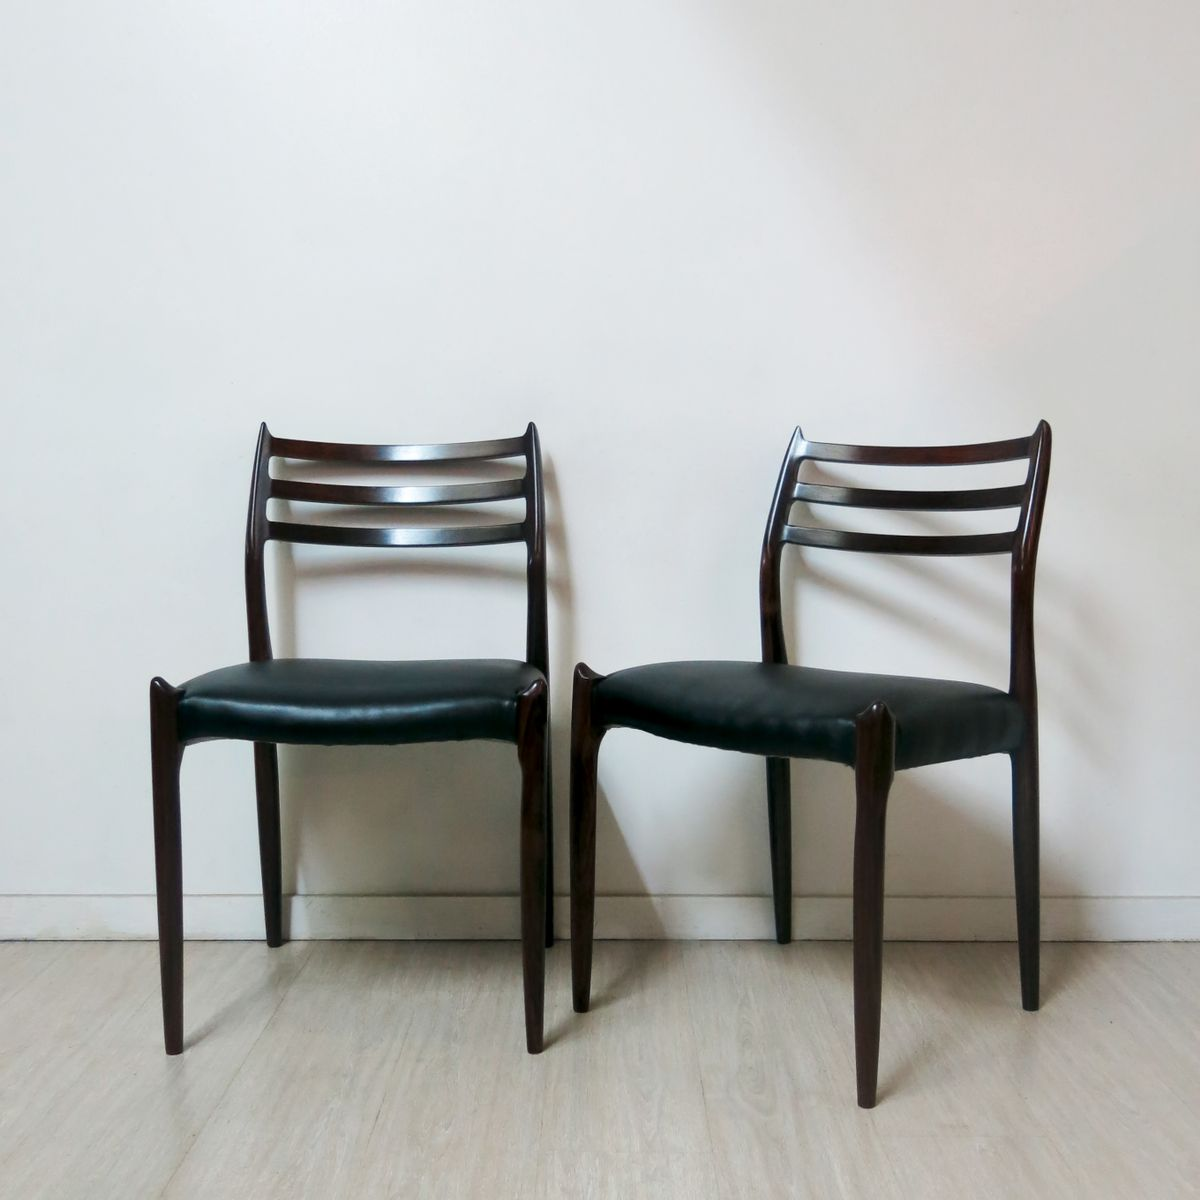 Dining chairs by niels o m ller 1960 set of 6 for sale for Set of 6 dining chairs